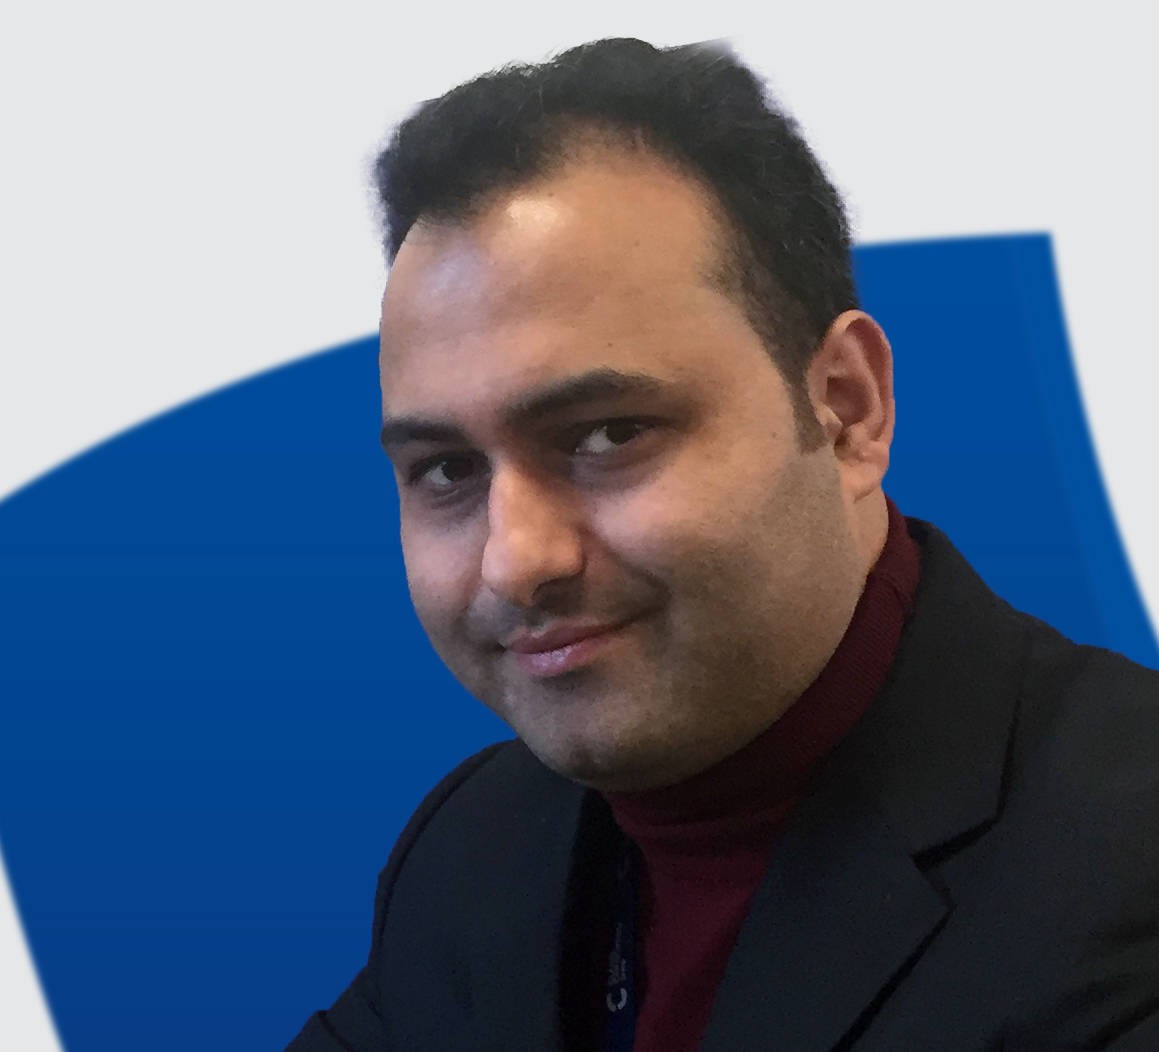 New Financial Director, James Chatterjee